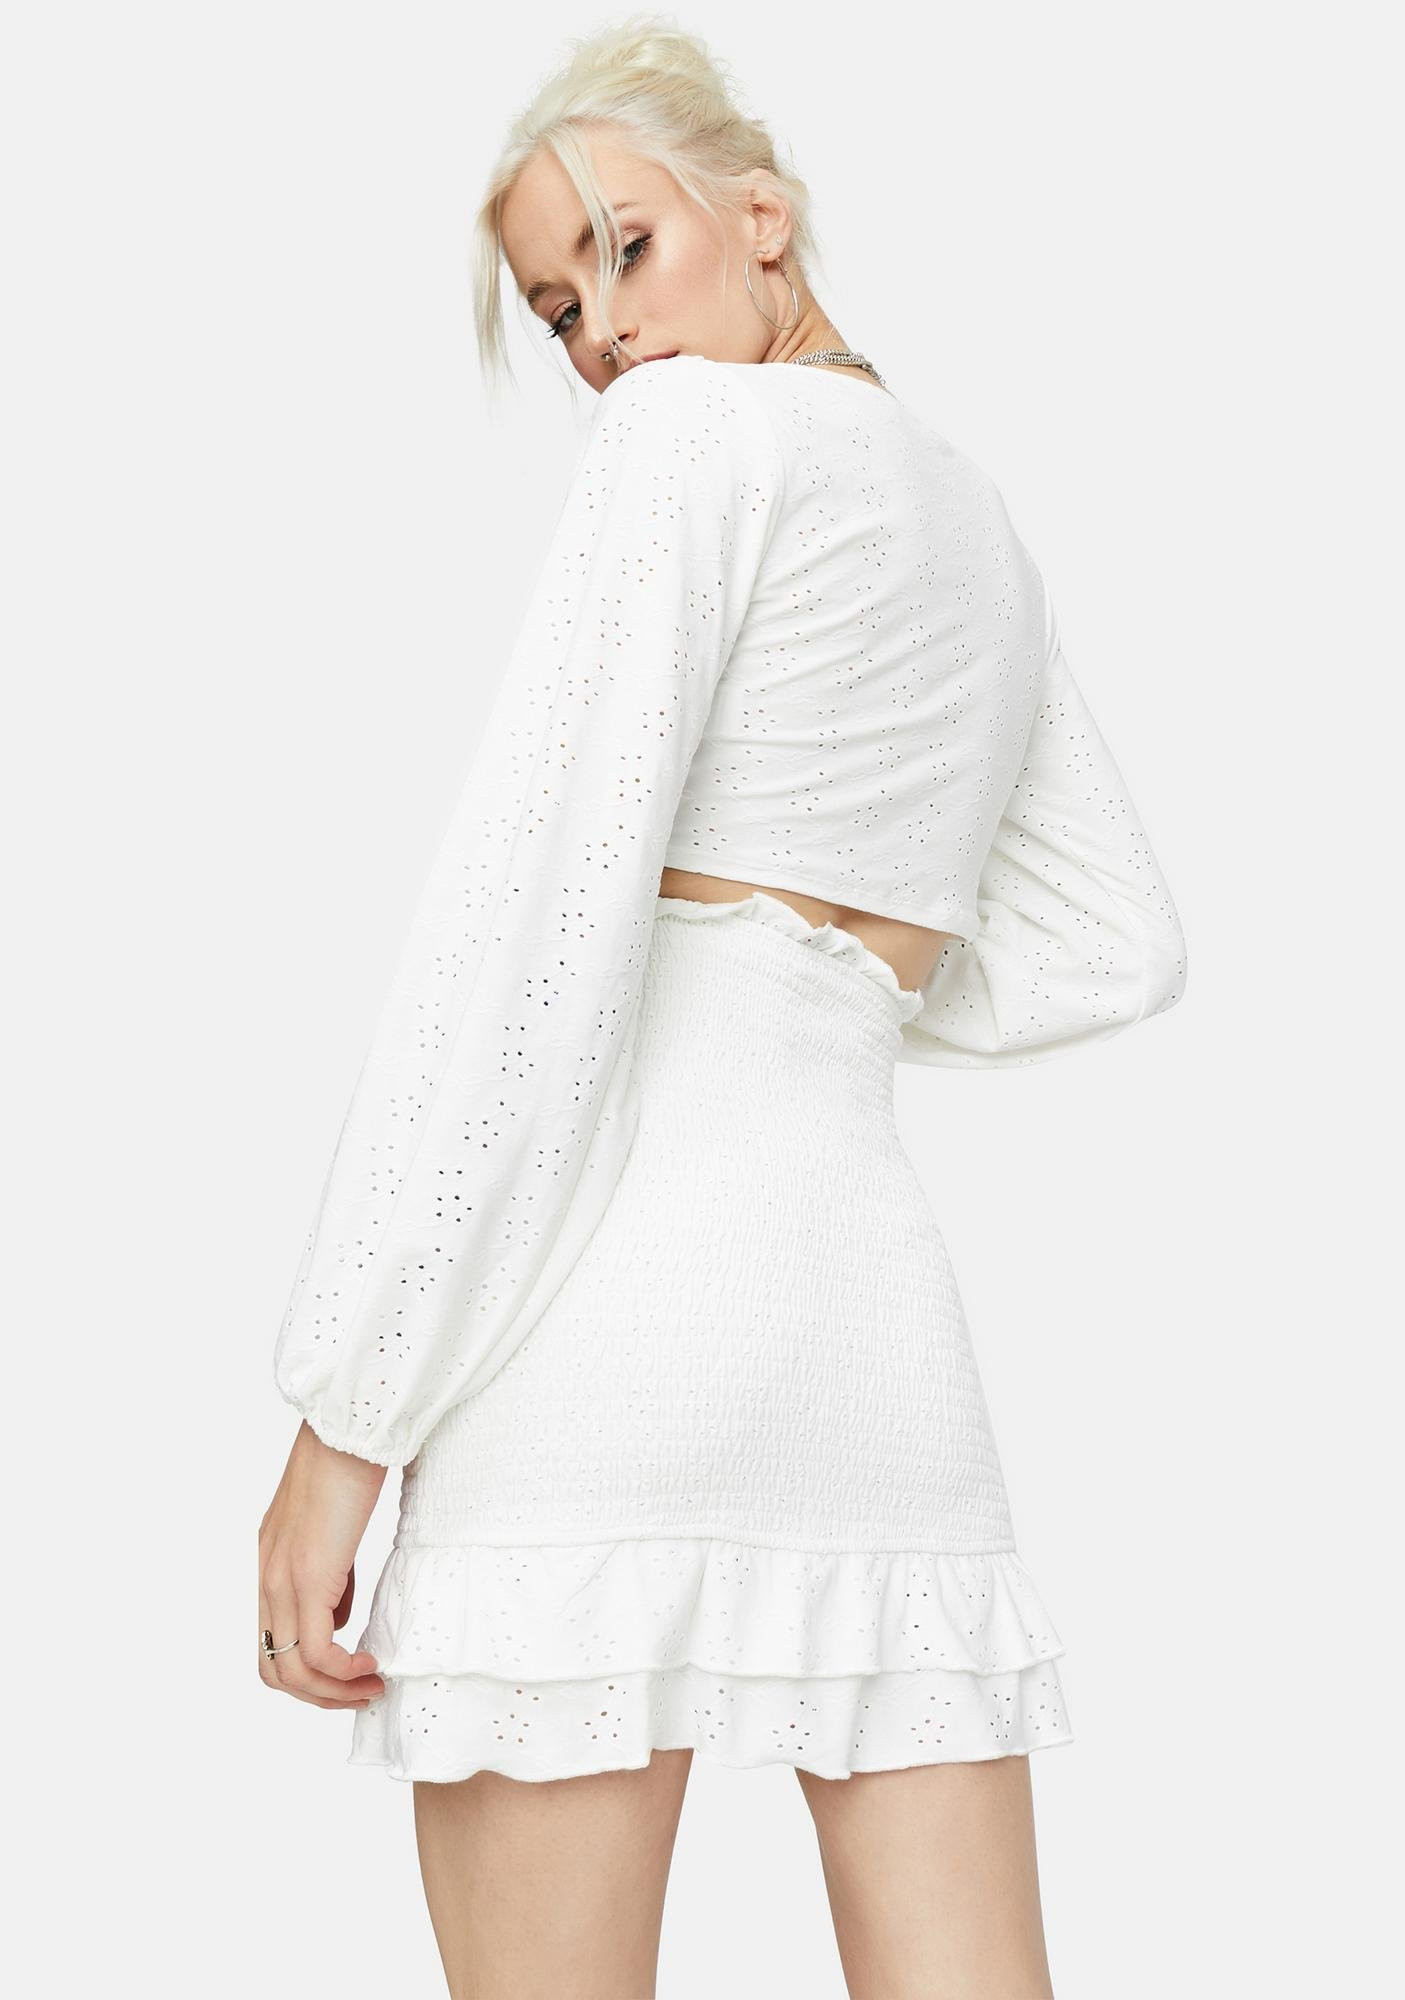 Room With A View Eyelet Crop Top